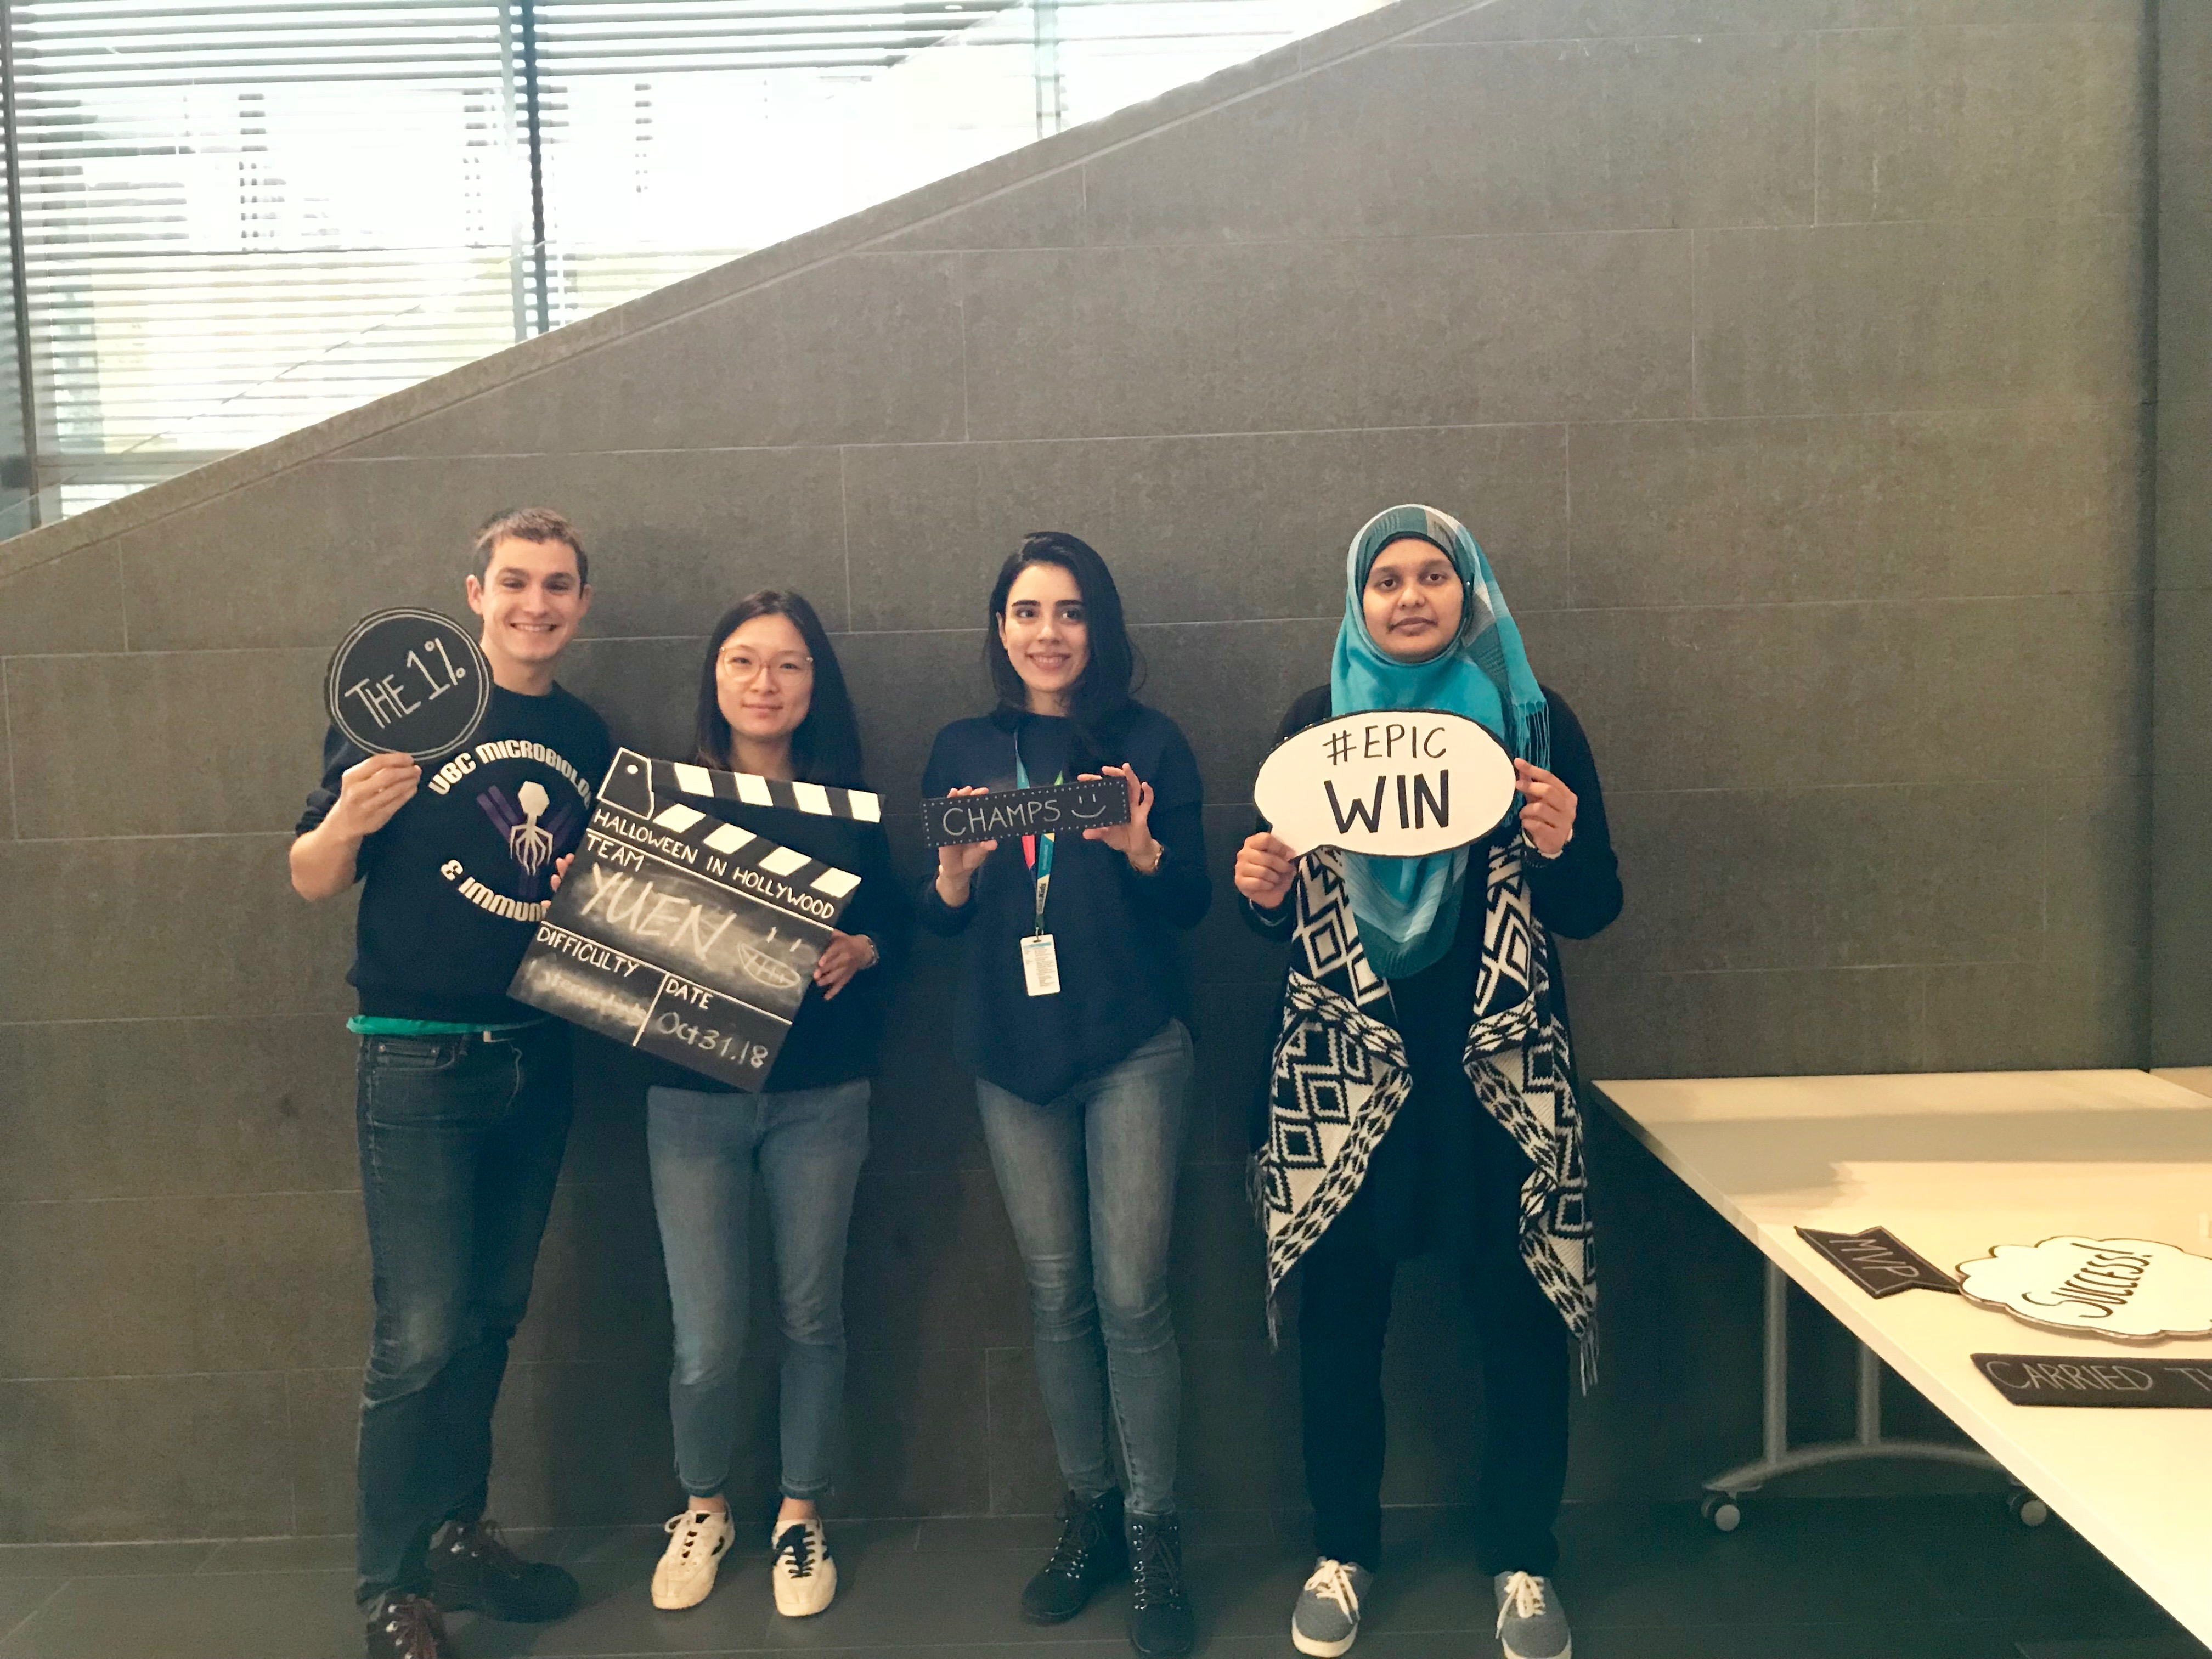 4 lab members holding up signs about completing an escape room challenge